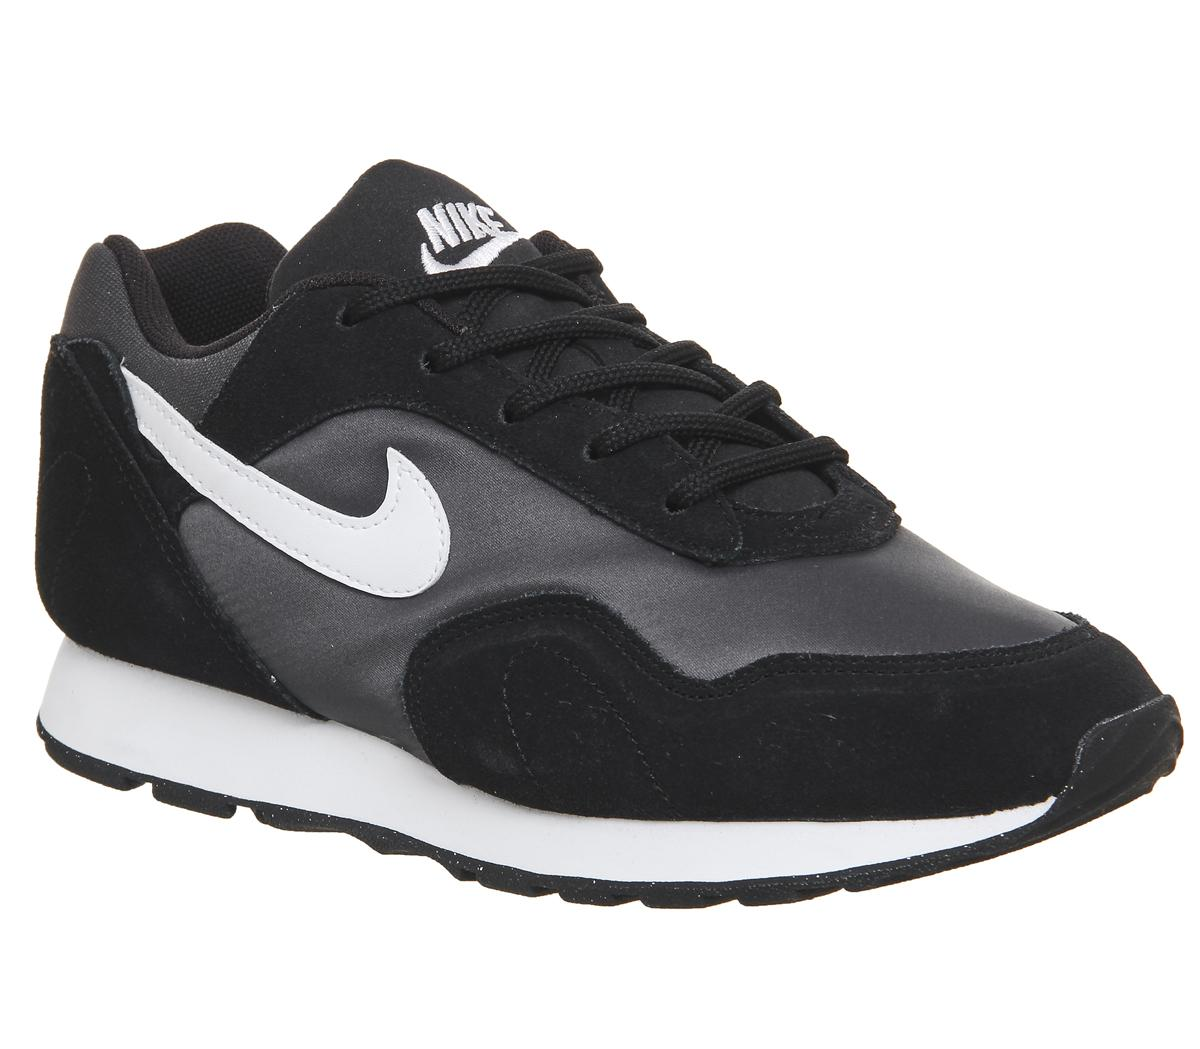 Outburst Trainers